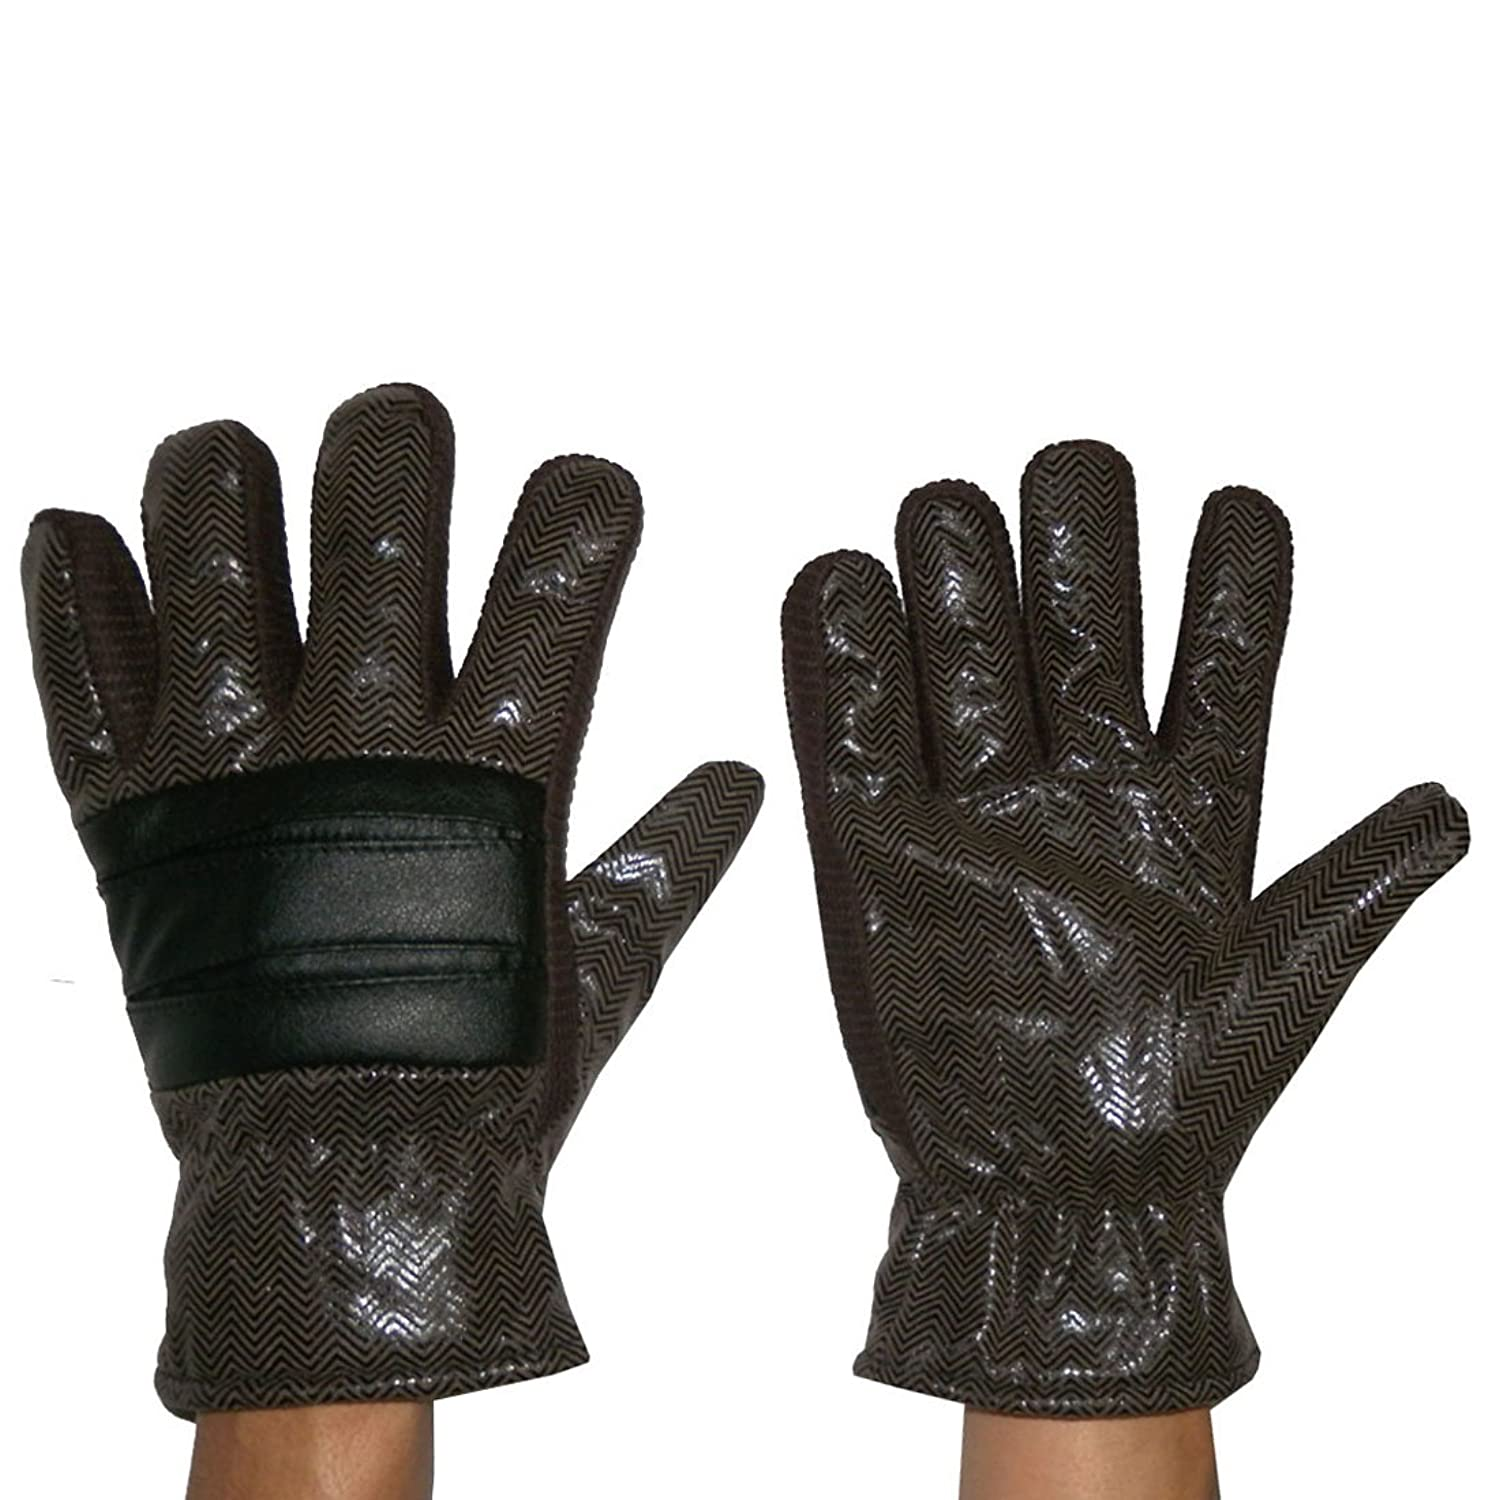 Herren Warm & Windproof Insulated Winter Ski Handschuhe with Interior Lining